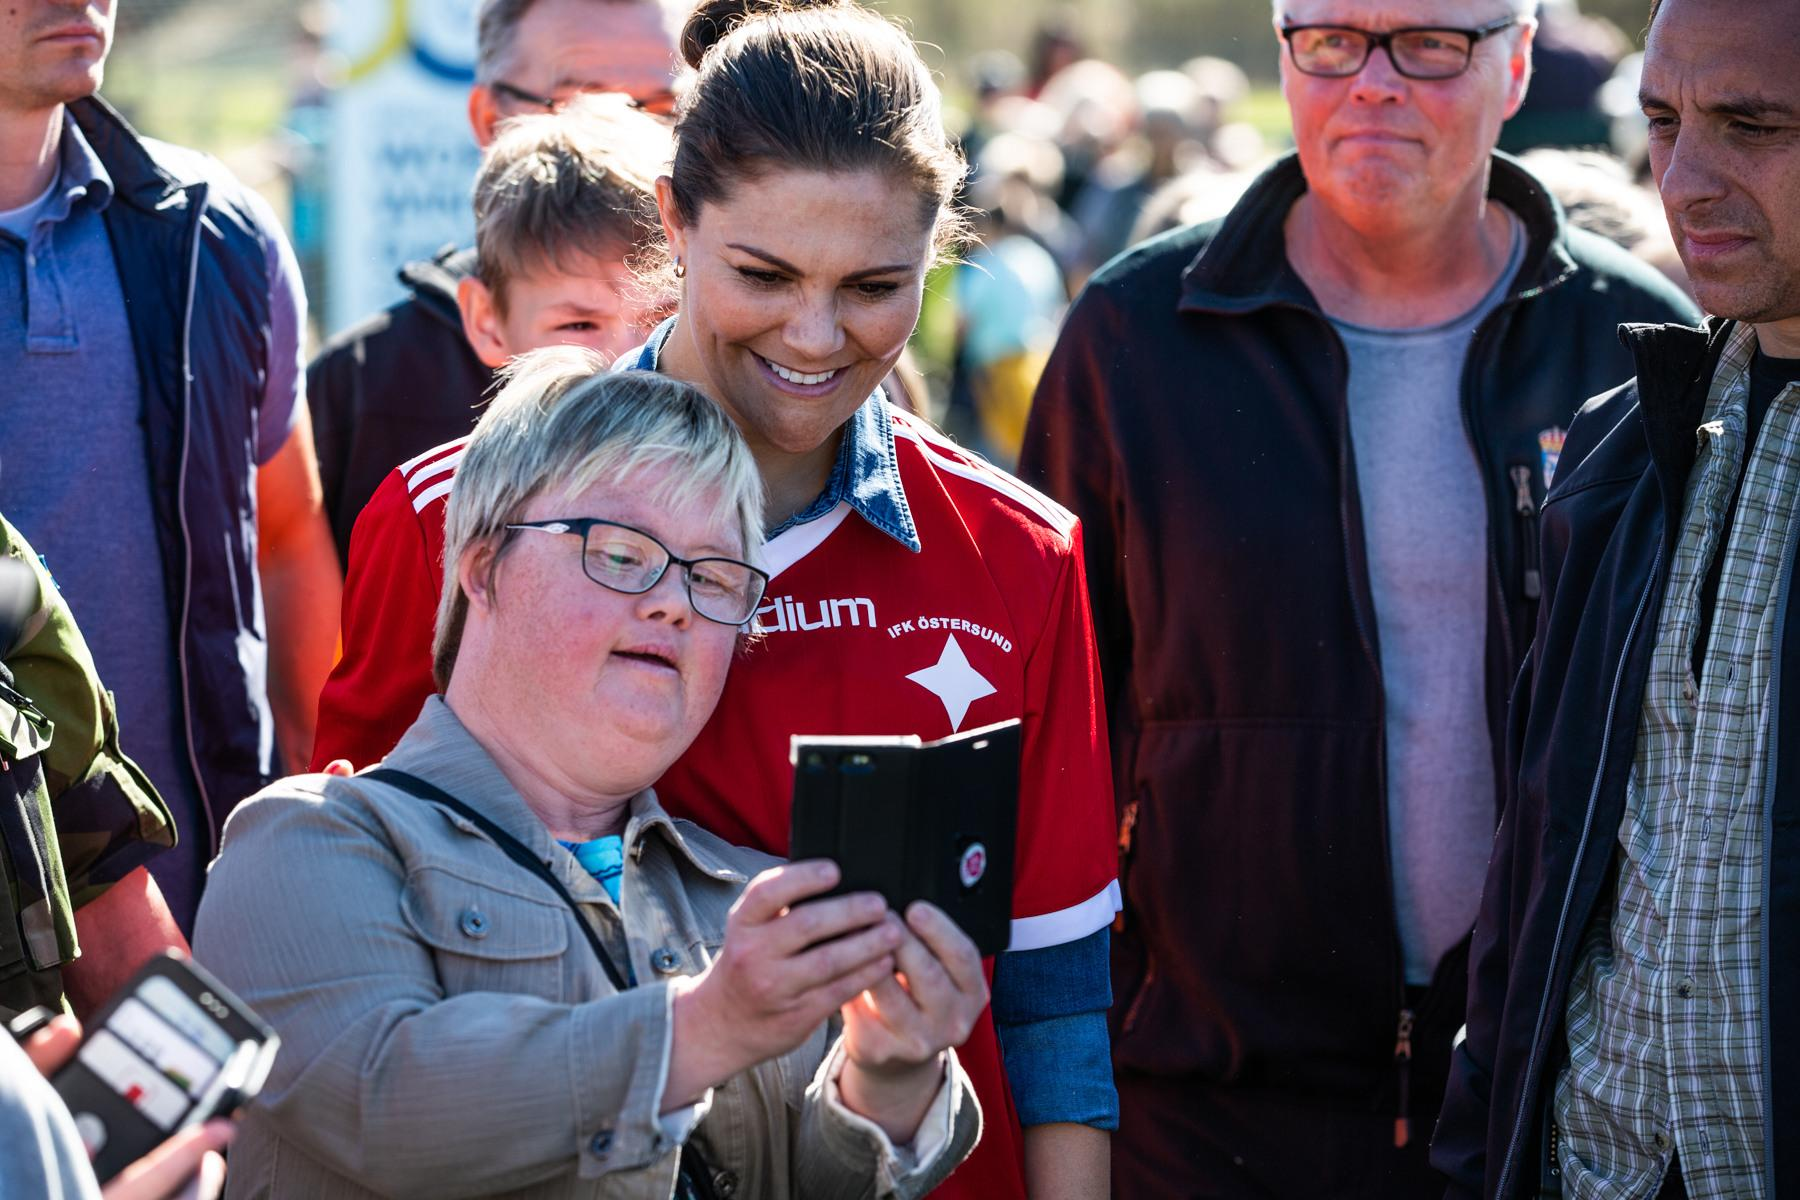 Crown Princess Victoria in a football T-shirt being shown something on a woman's mobile phone.